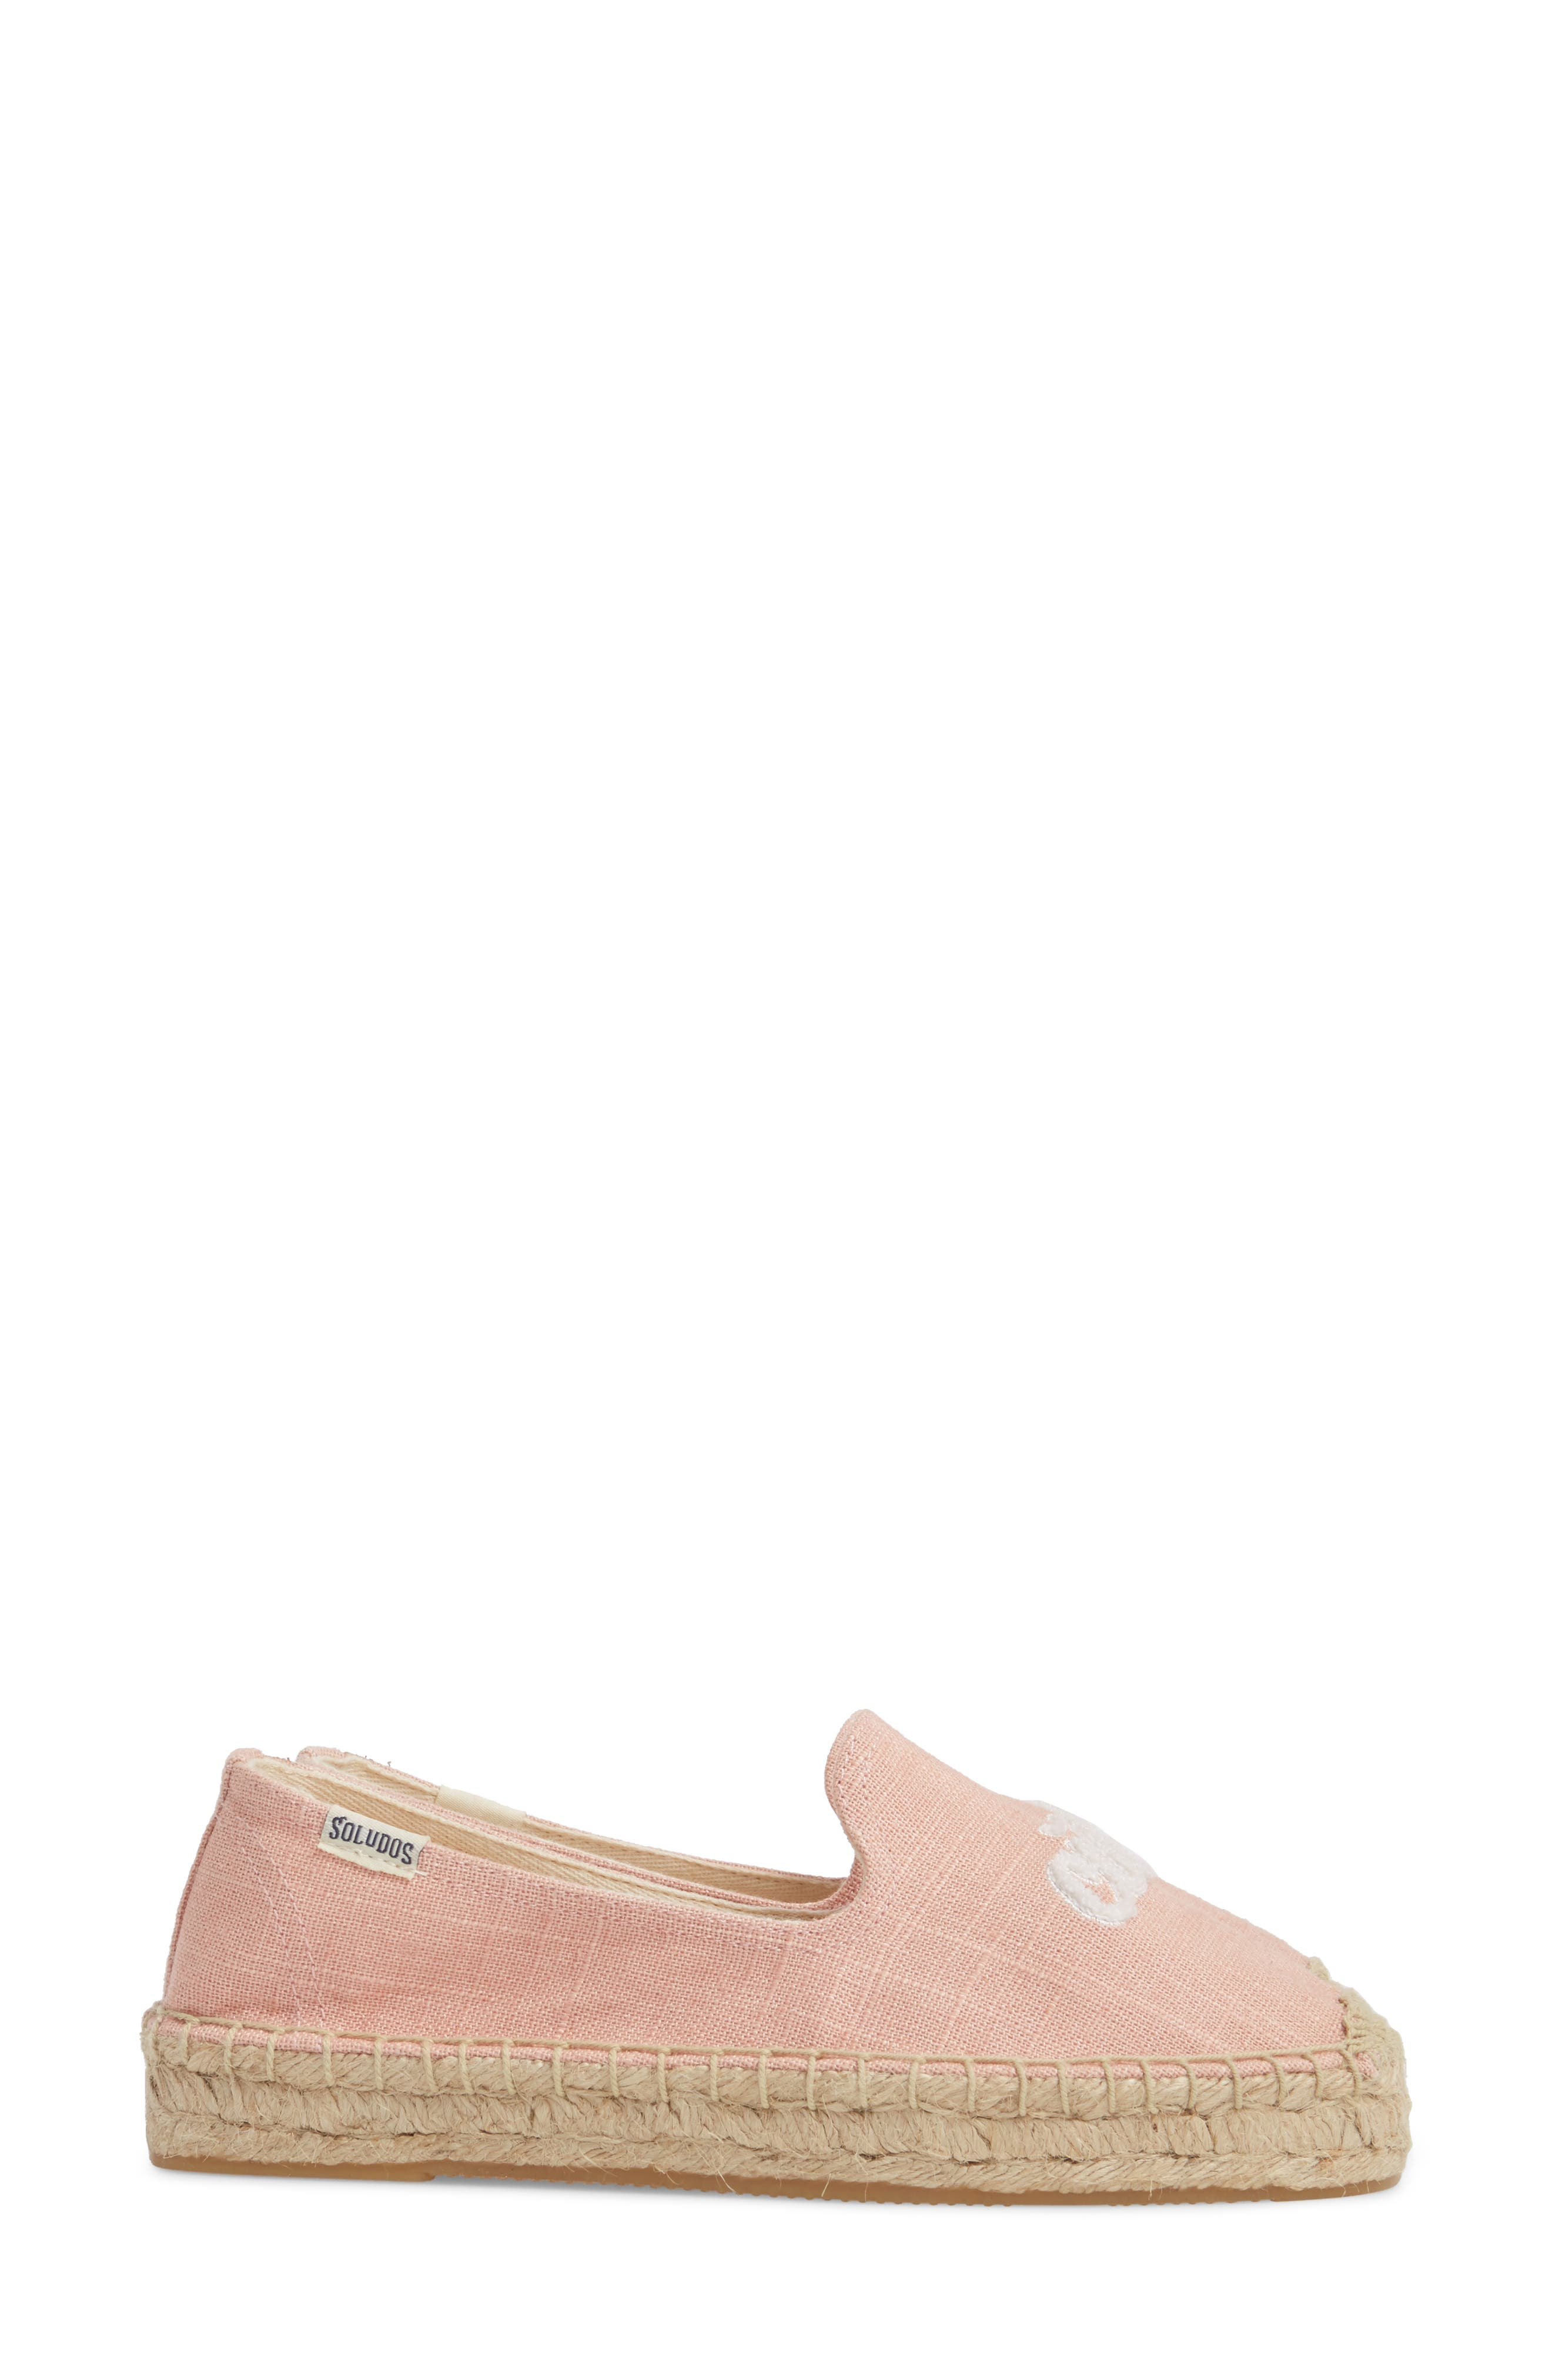 Ciao Bella Espadrille Flat,                             Alternate thumbnail 4, color,                             DUSTY ROSE FABRIC